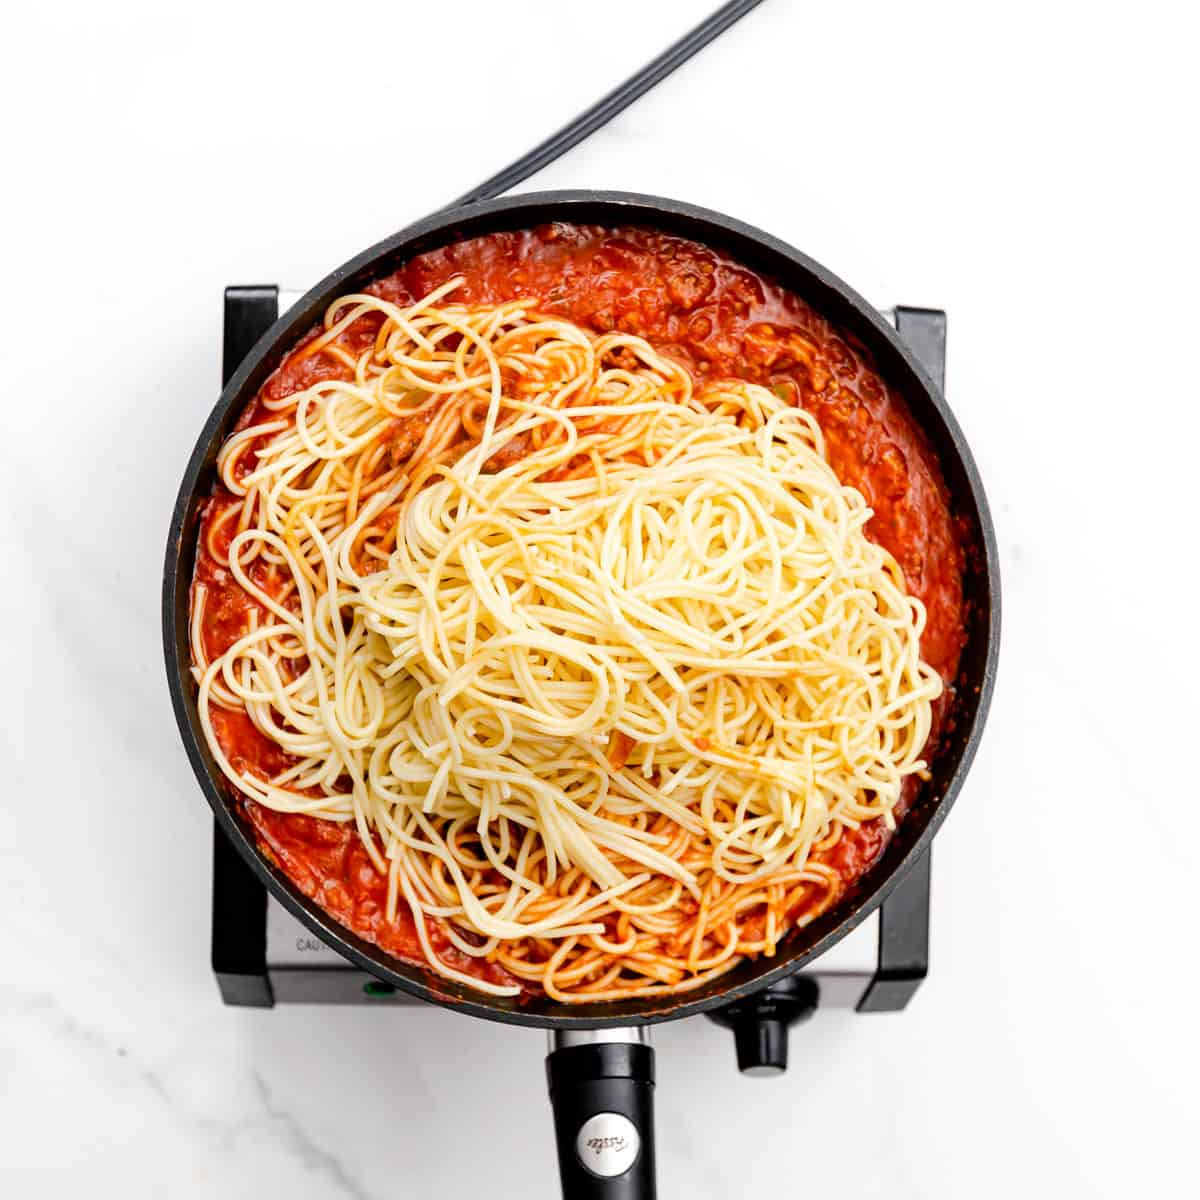 Add the cooked and drained spaghetti into the sauce. Stir for about 1-2 minutes.